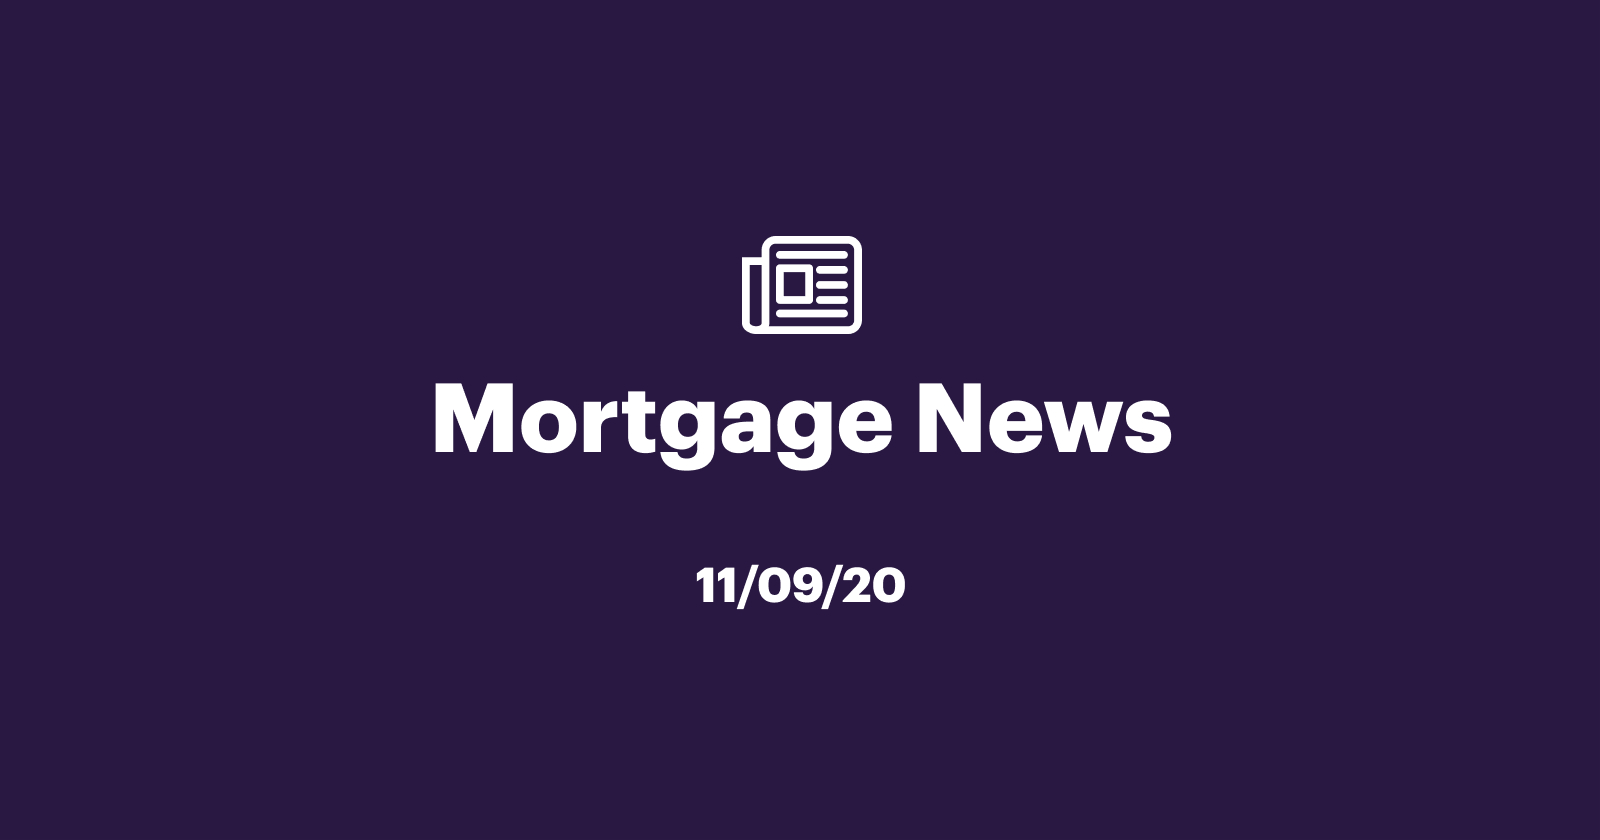 Mortgage News 11/09/2020: Are Record Breaking Rates Behind Us?